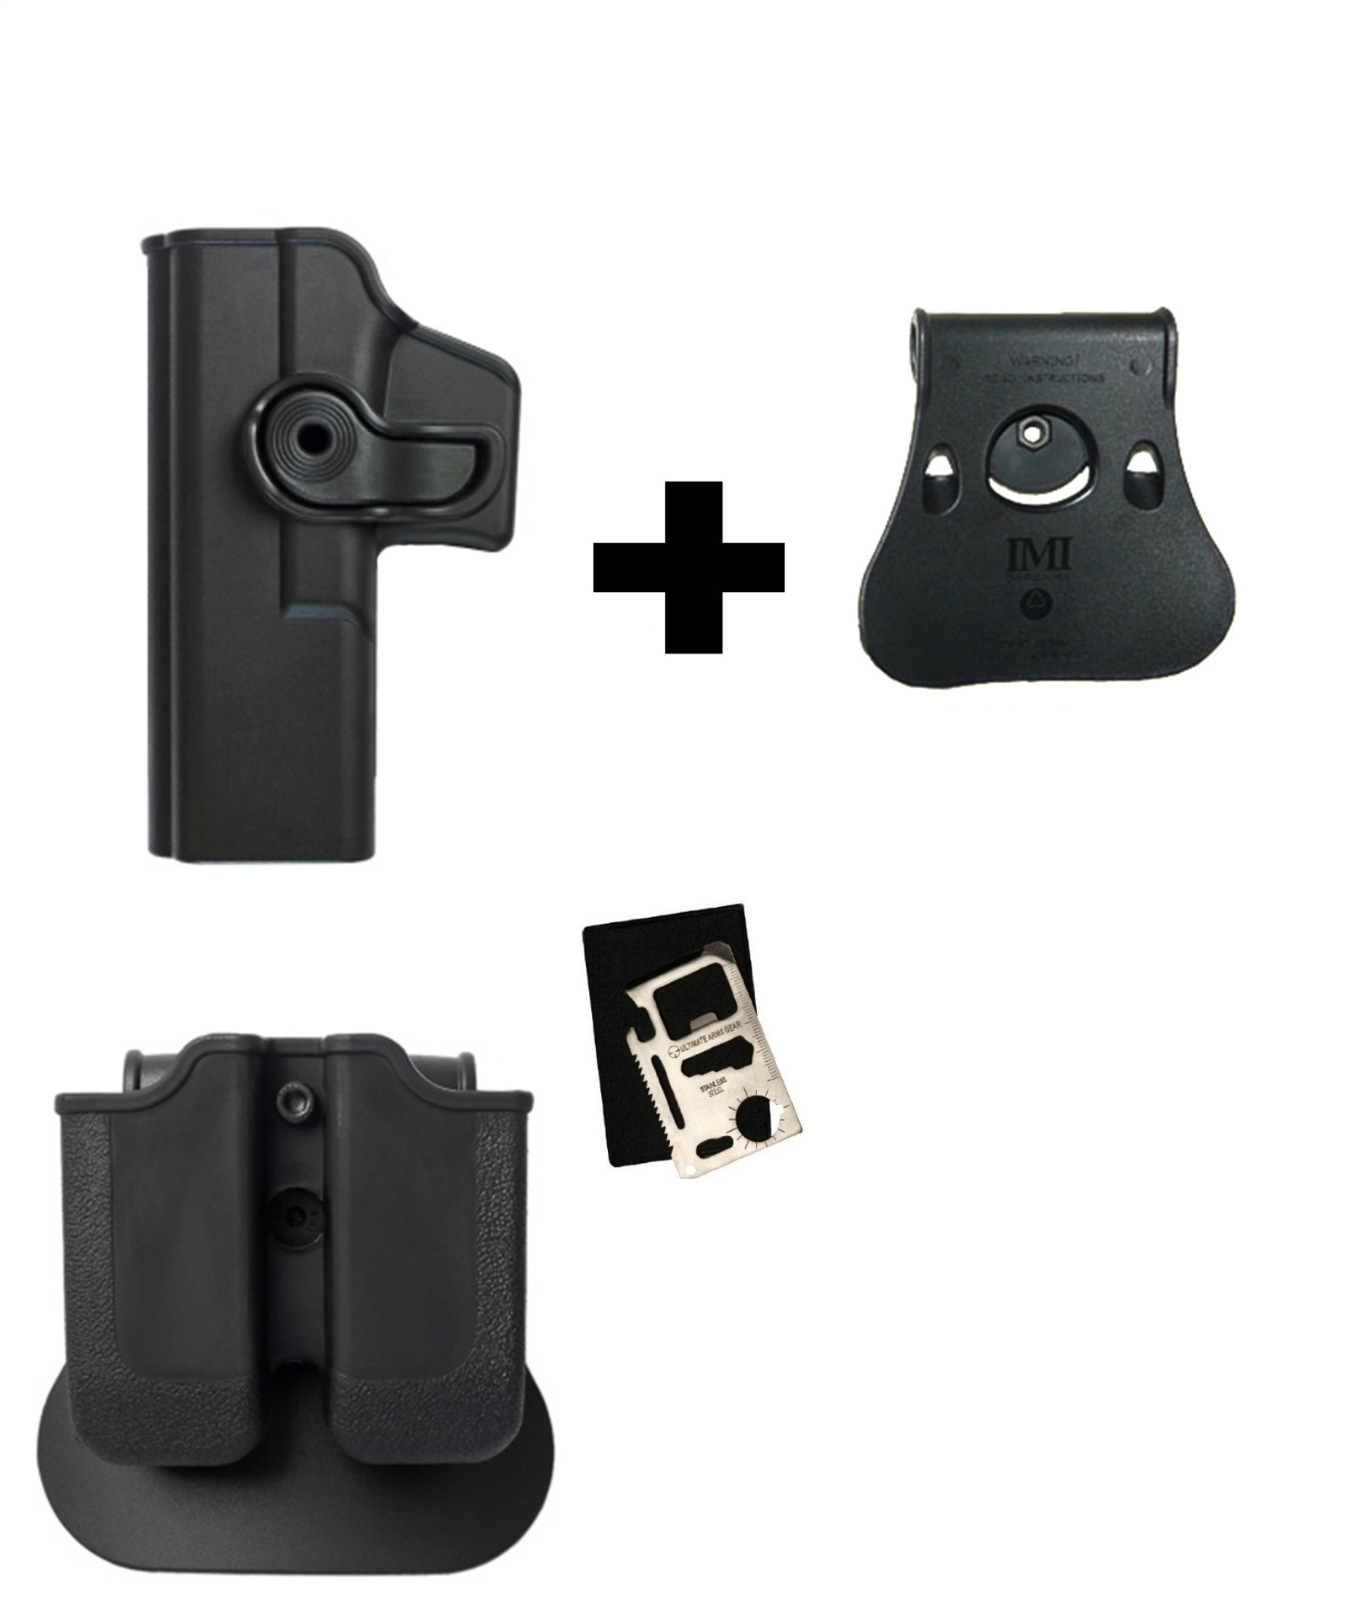 IMI Defense Z2000 MP00 Double Mag Holder & Paddle + Z1010LH 360� Rotate Holster Glock 17 22 28 31 34 Left Handed Gen 4... by